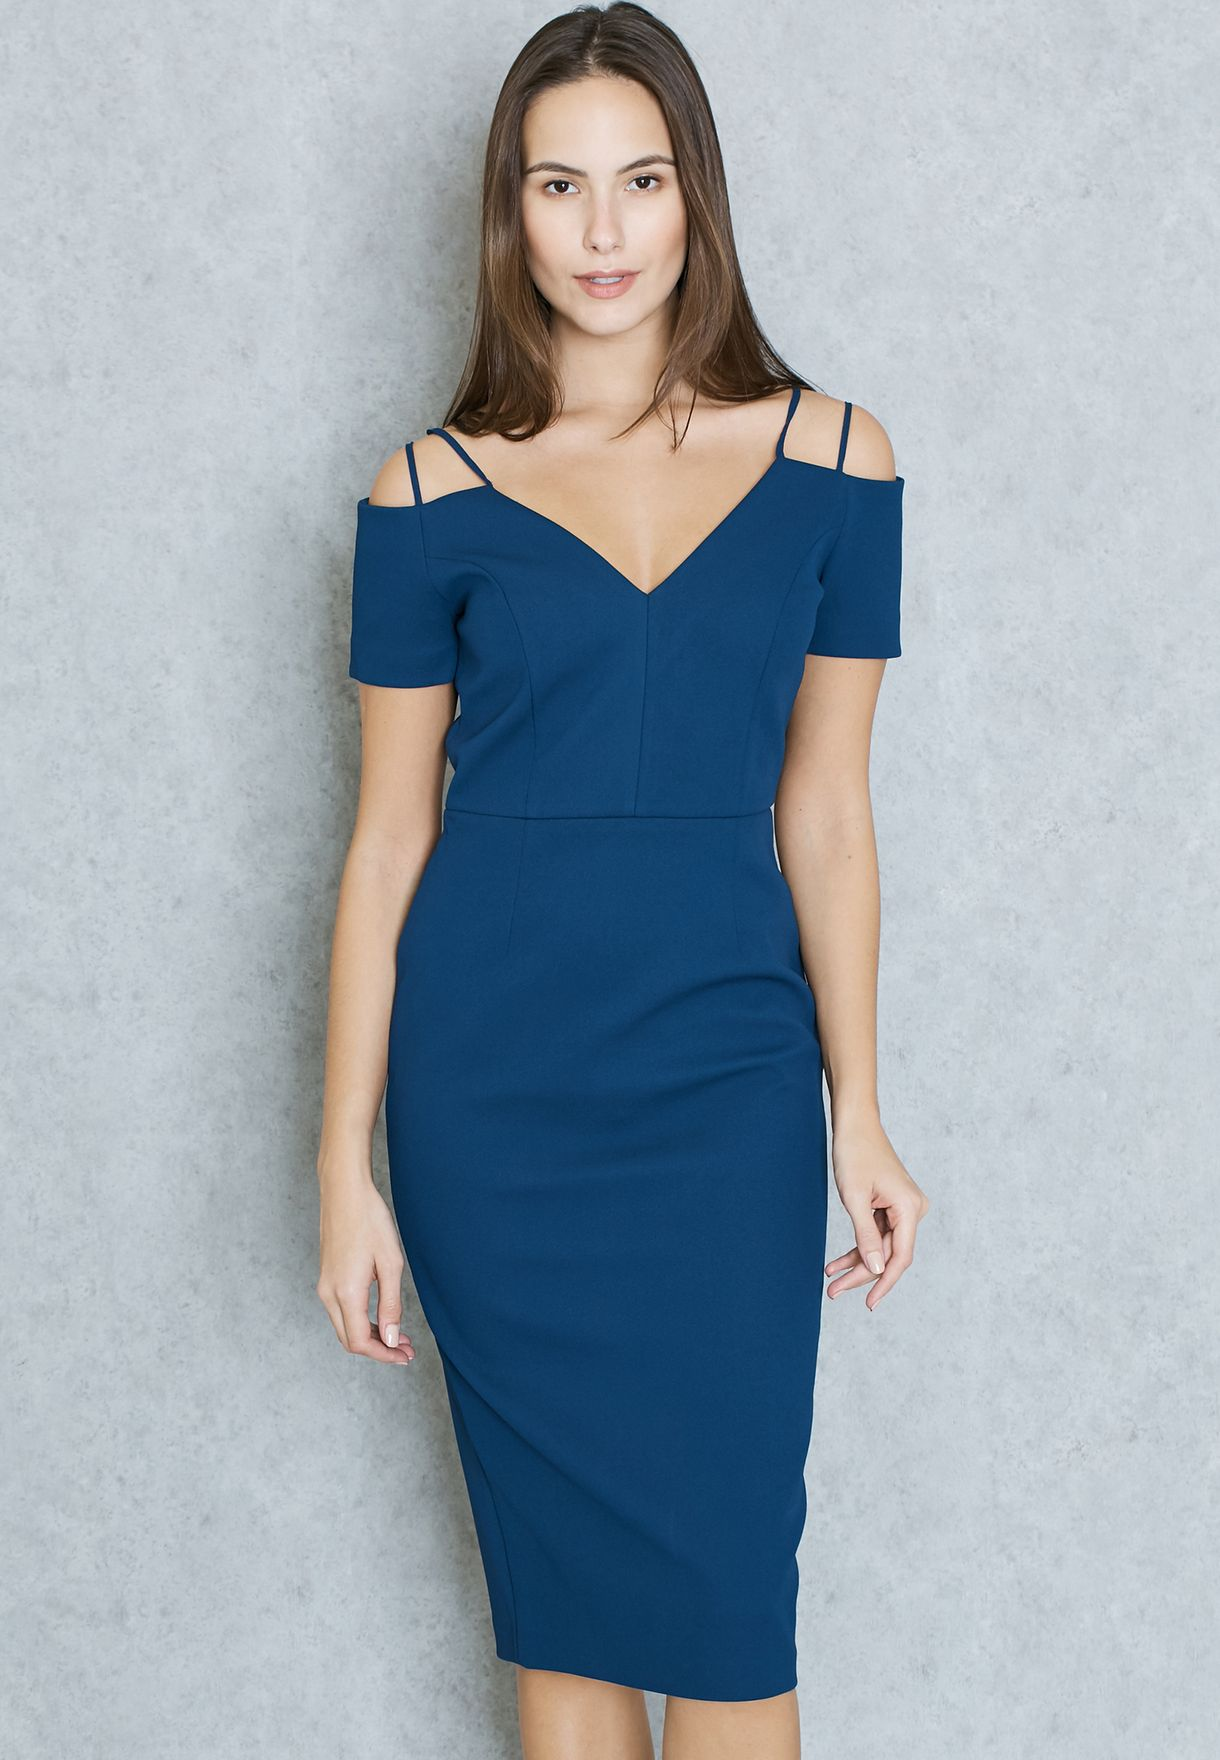 061feeed436 Shop Topshop navy Cold Shoulder Bodycon Dress 35W05KNAV for Women in UAE